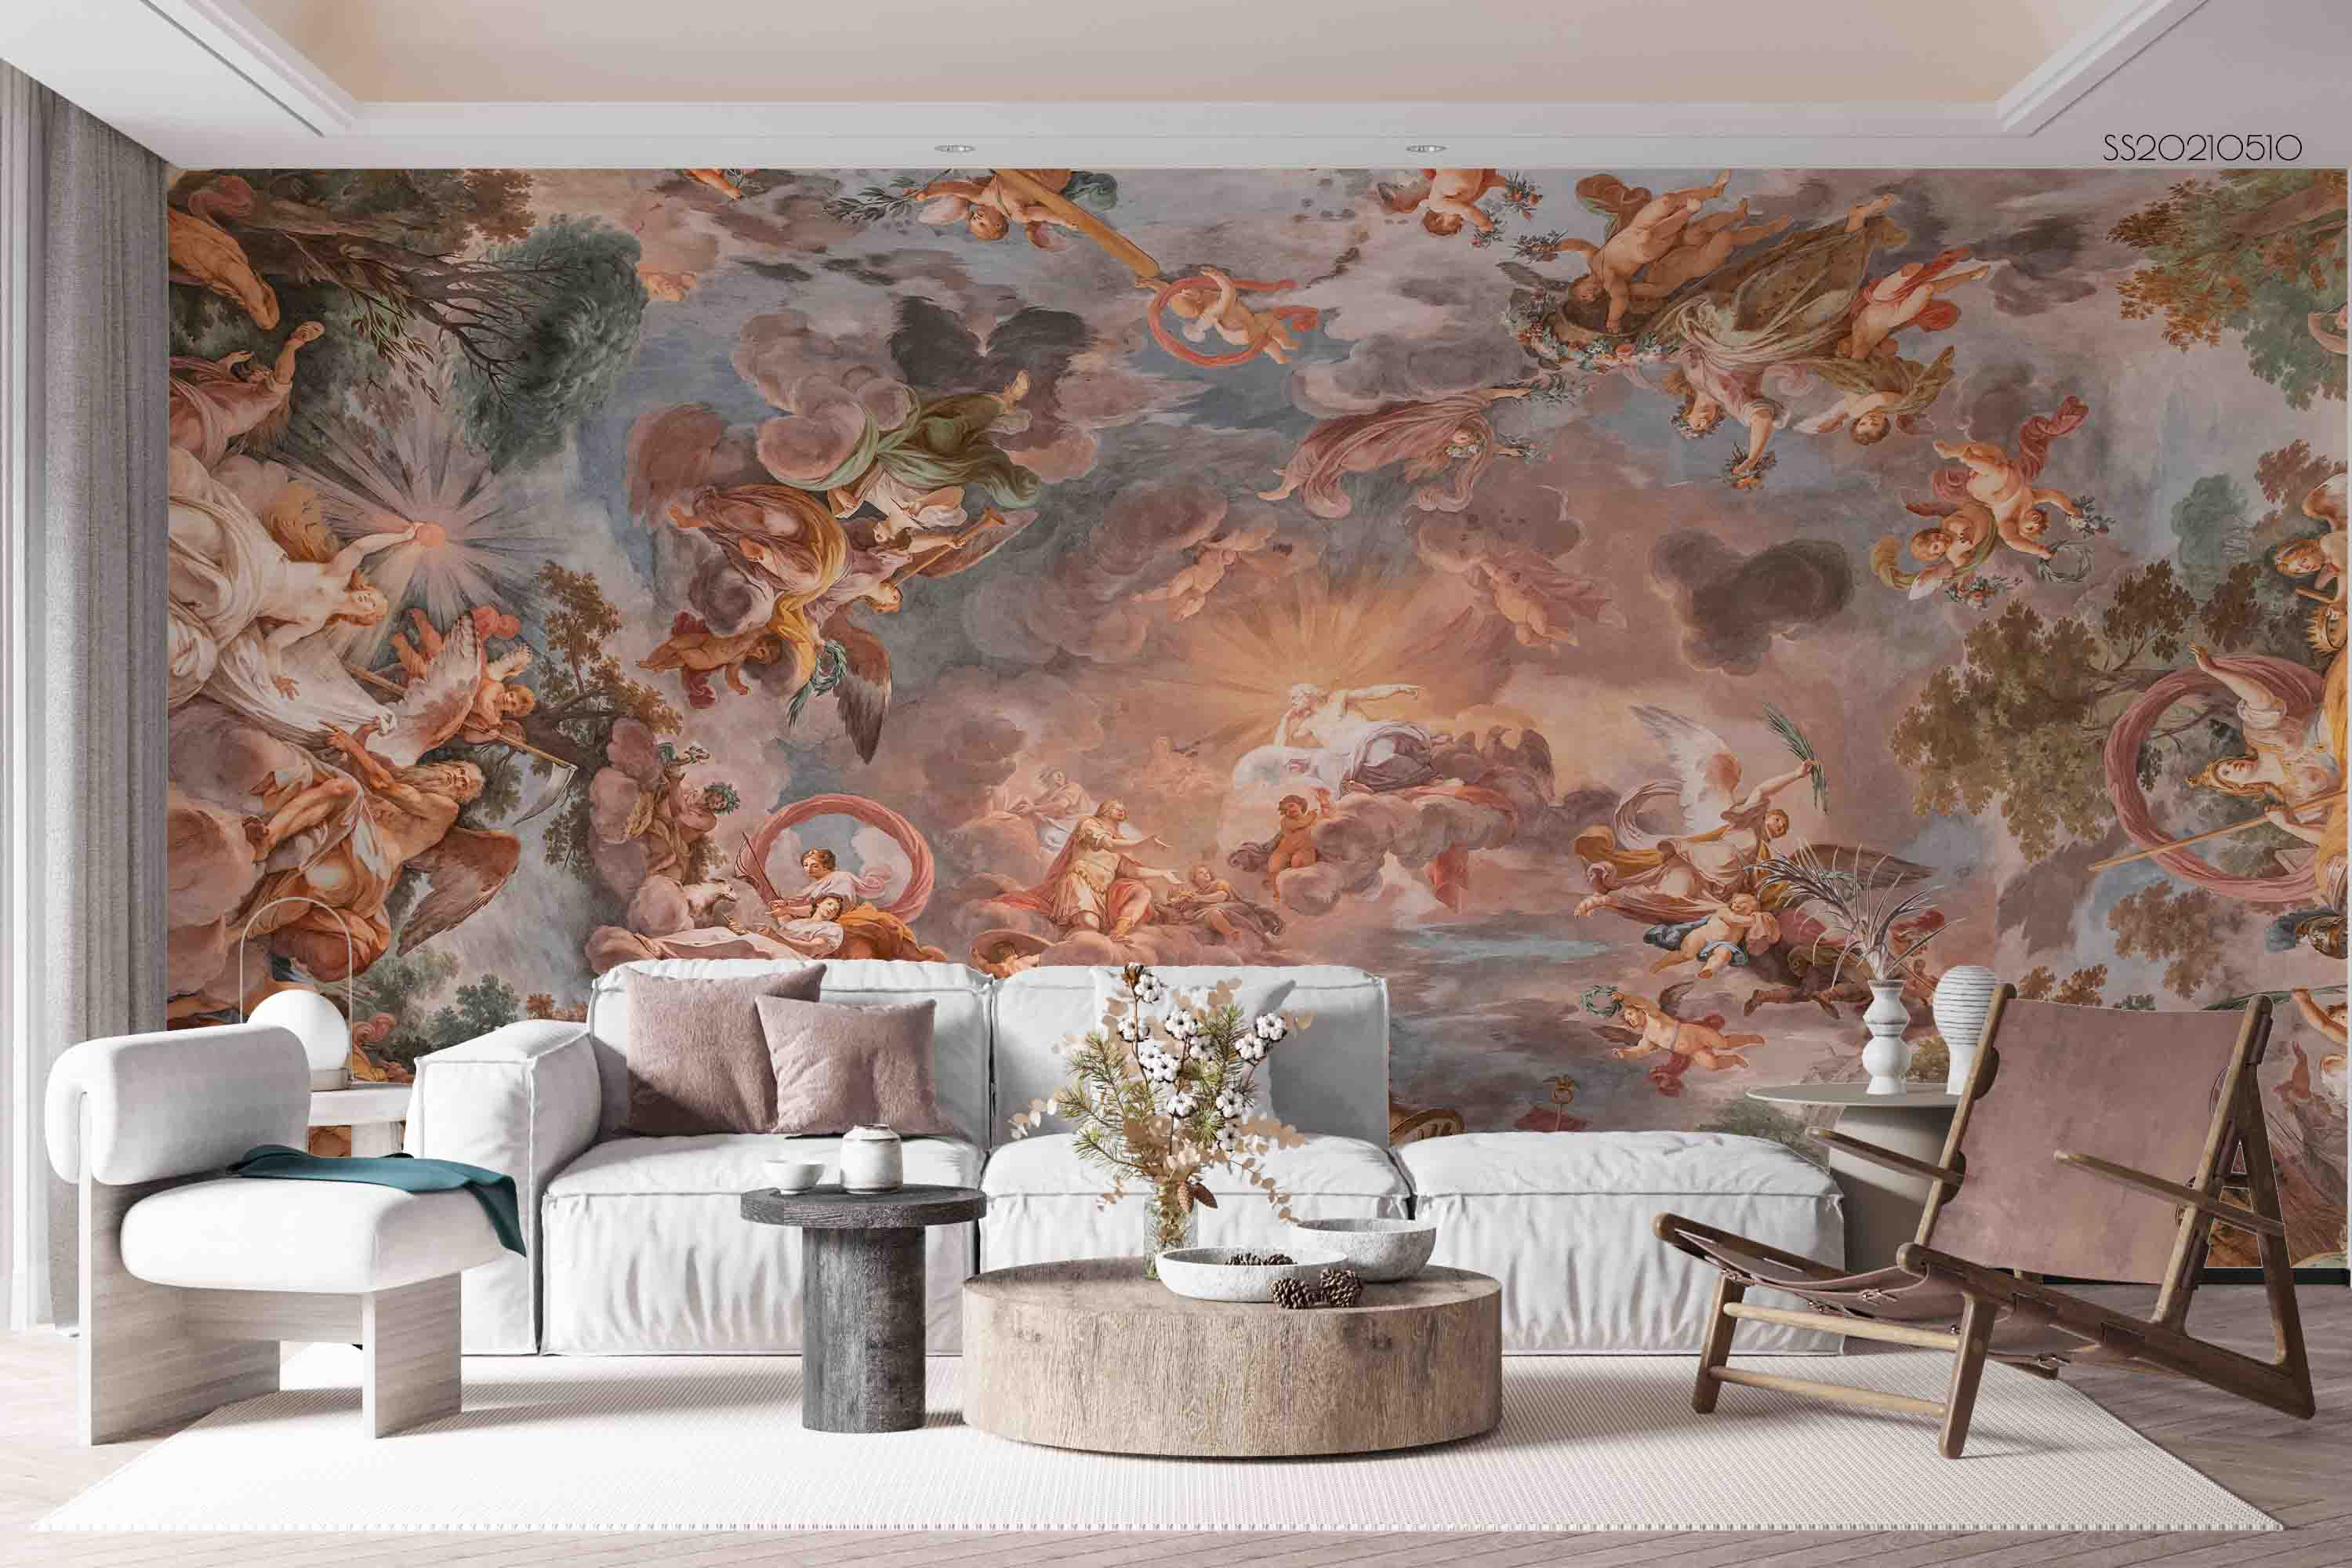 3D Religious Background Wall Mural Wallpaper LQH 301